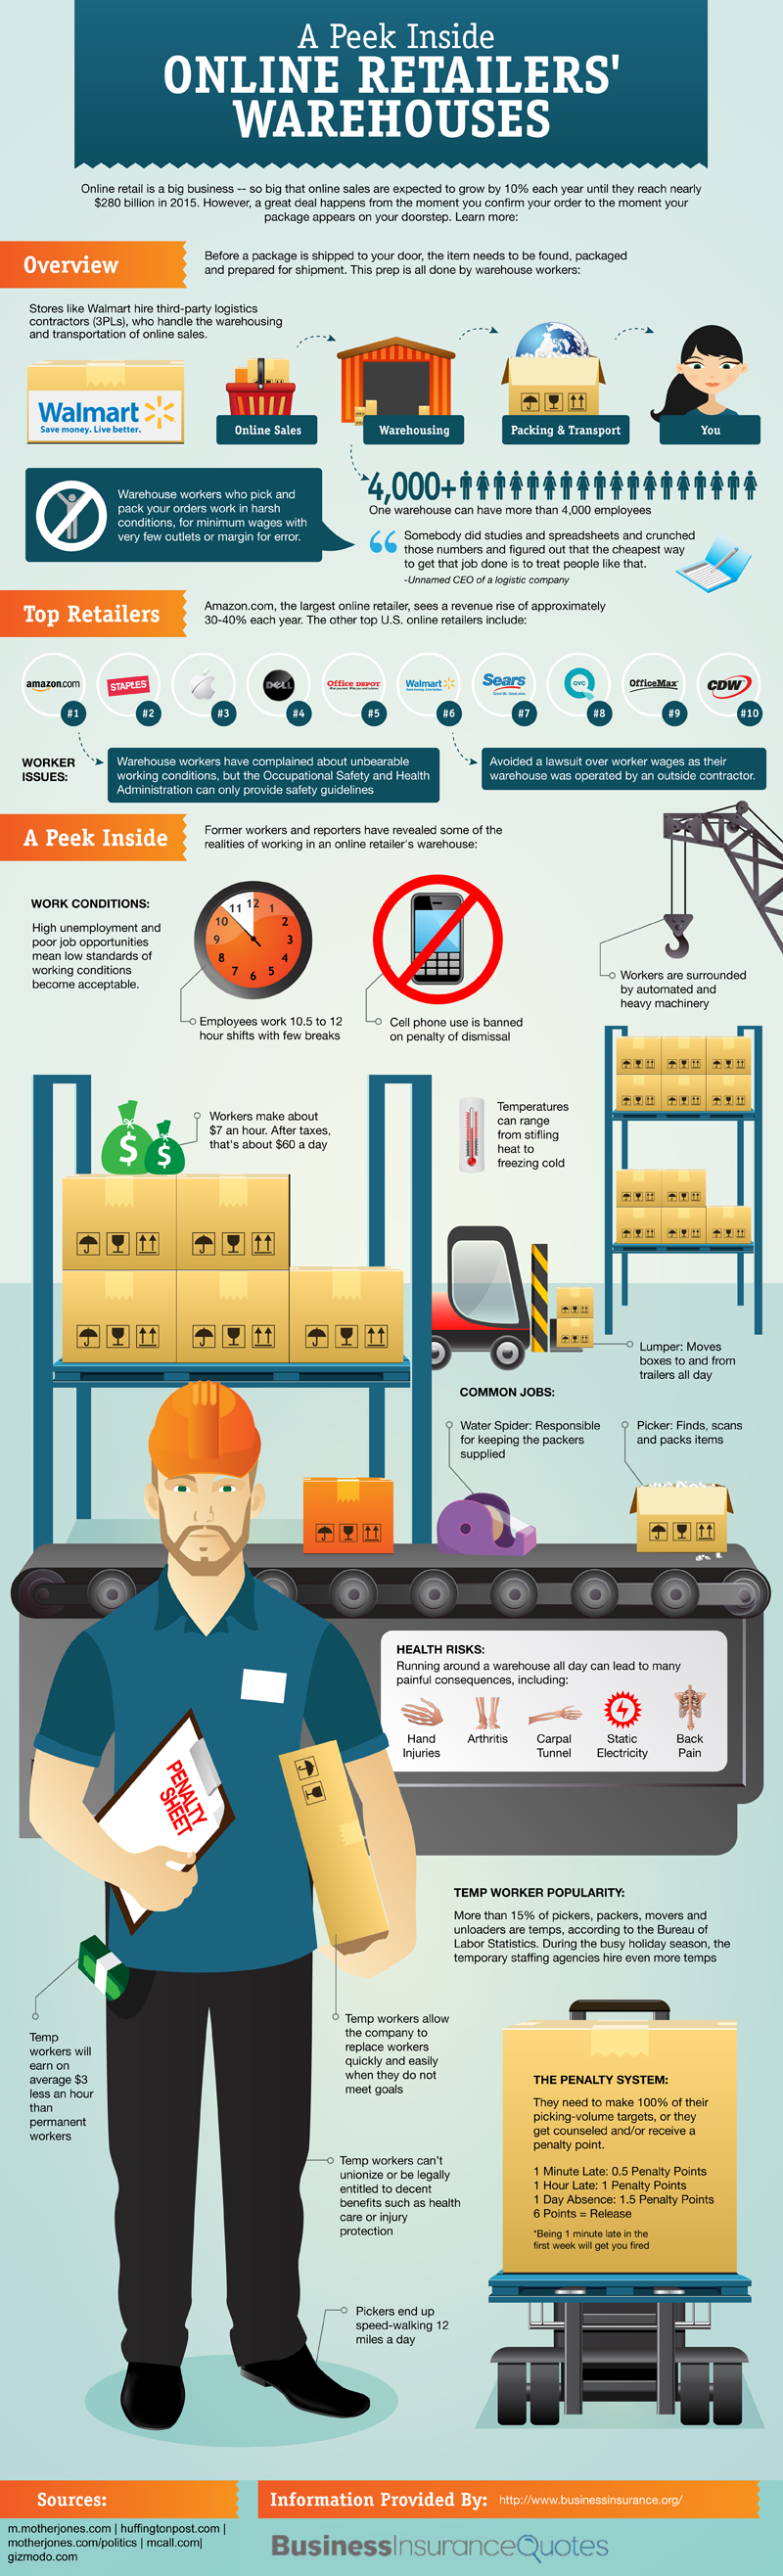 Warehouse Workers Statistics and Facts